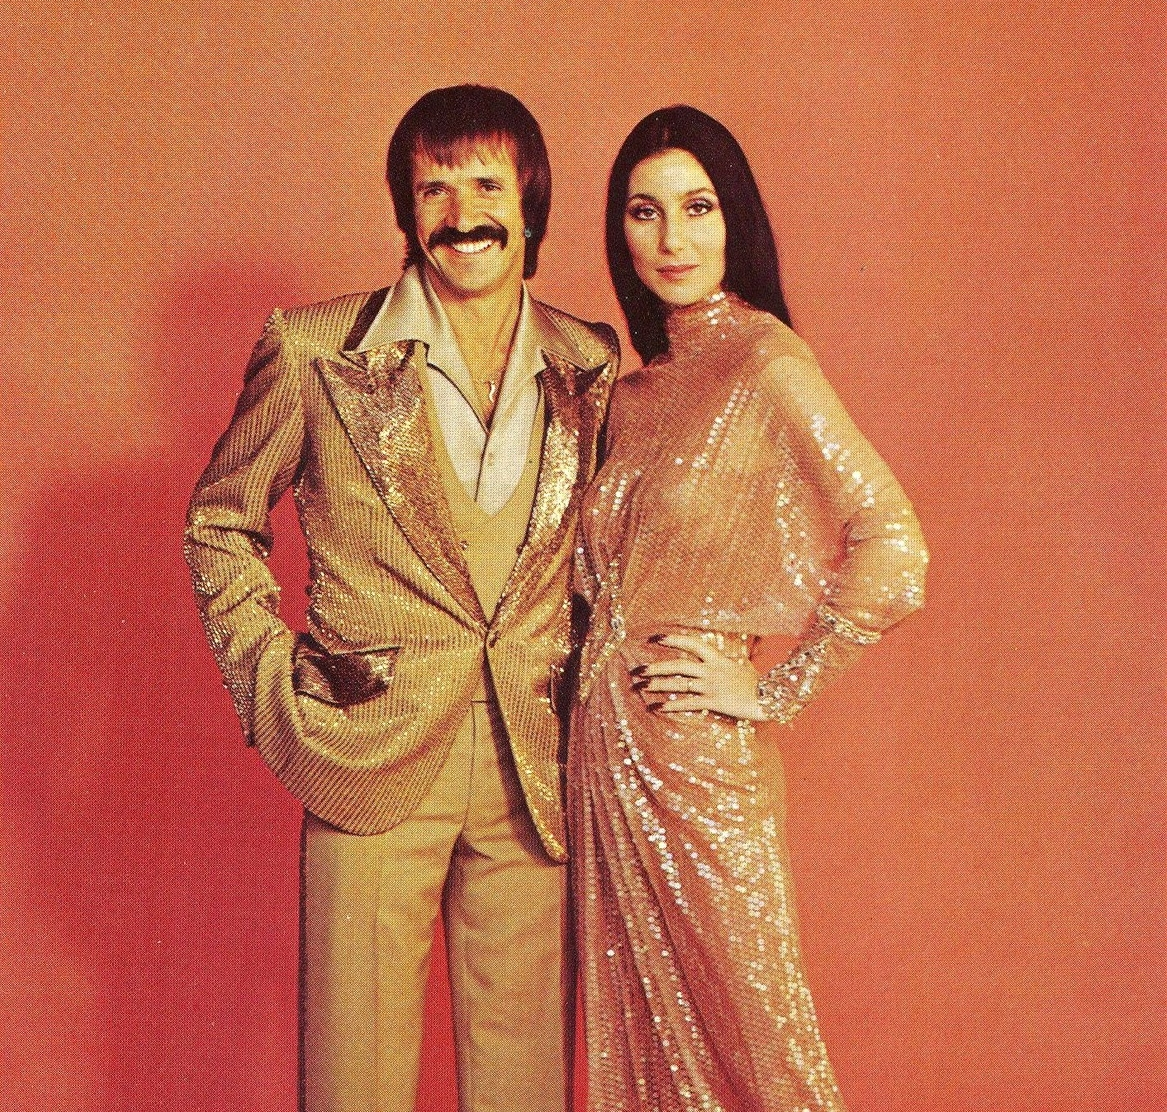 sonny and cher 3.jpg